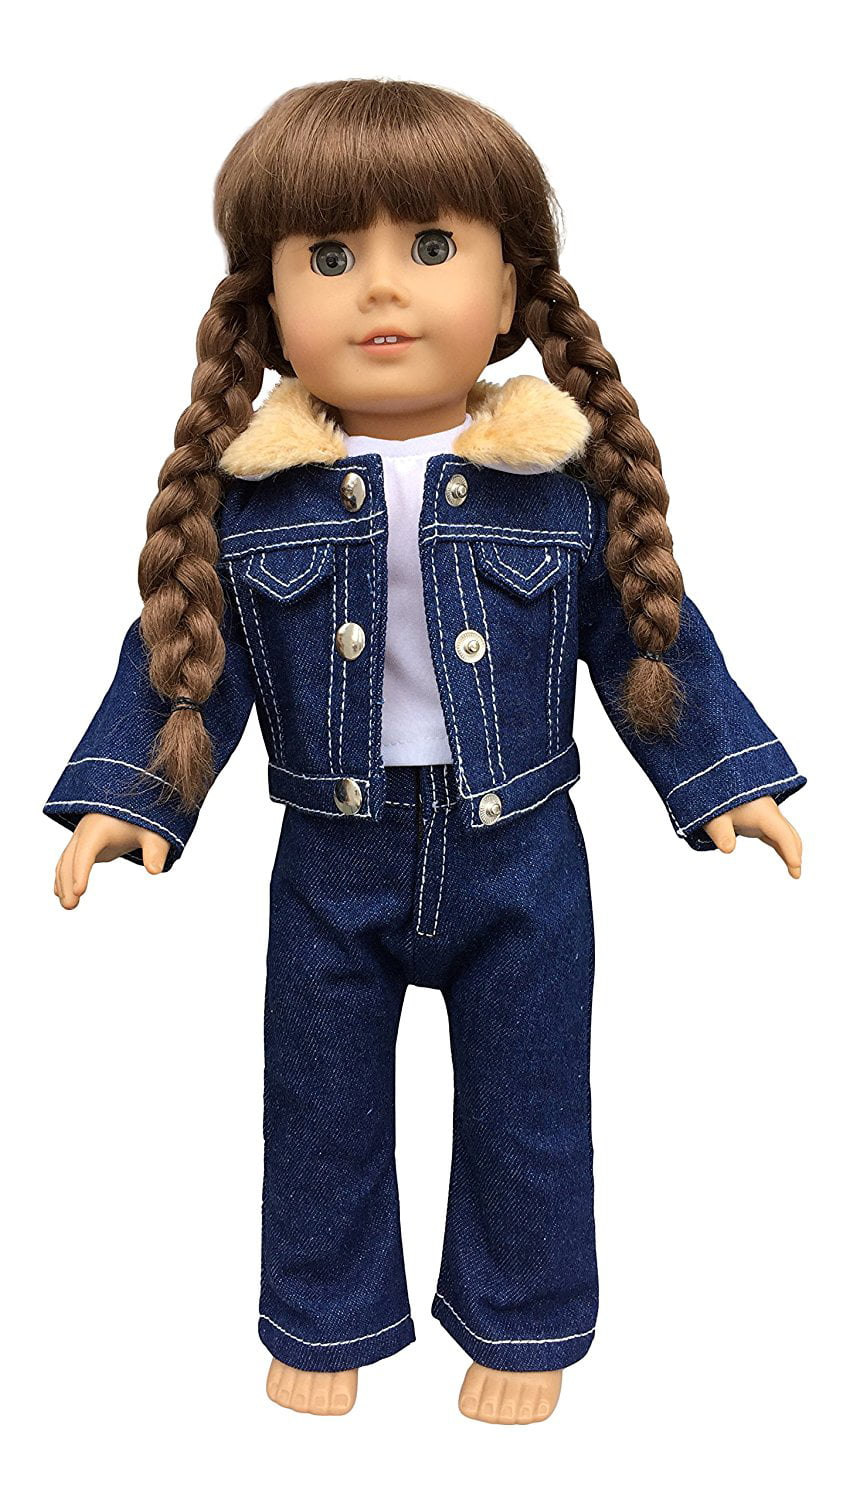 c74a8e6e94 American Girl Doll Clothes by In-Style Doll 18